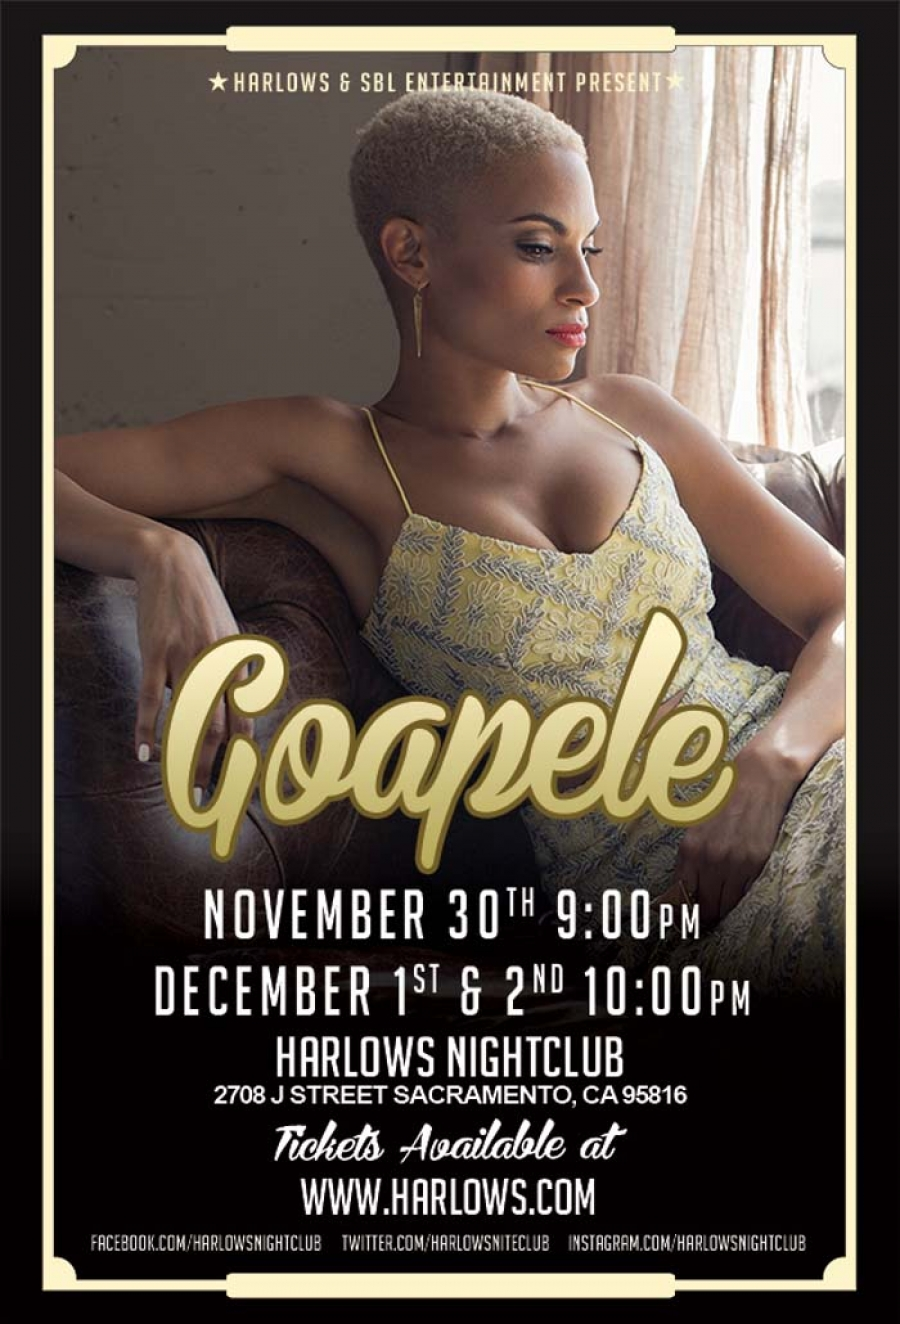 Will you be there? GOAPELE at Harlows on Nov 30 and Dec 1-2